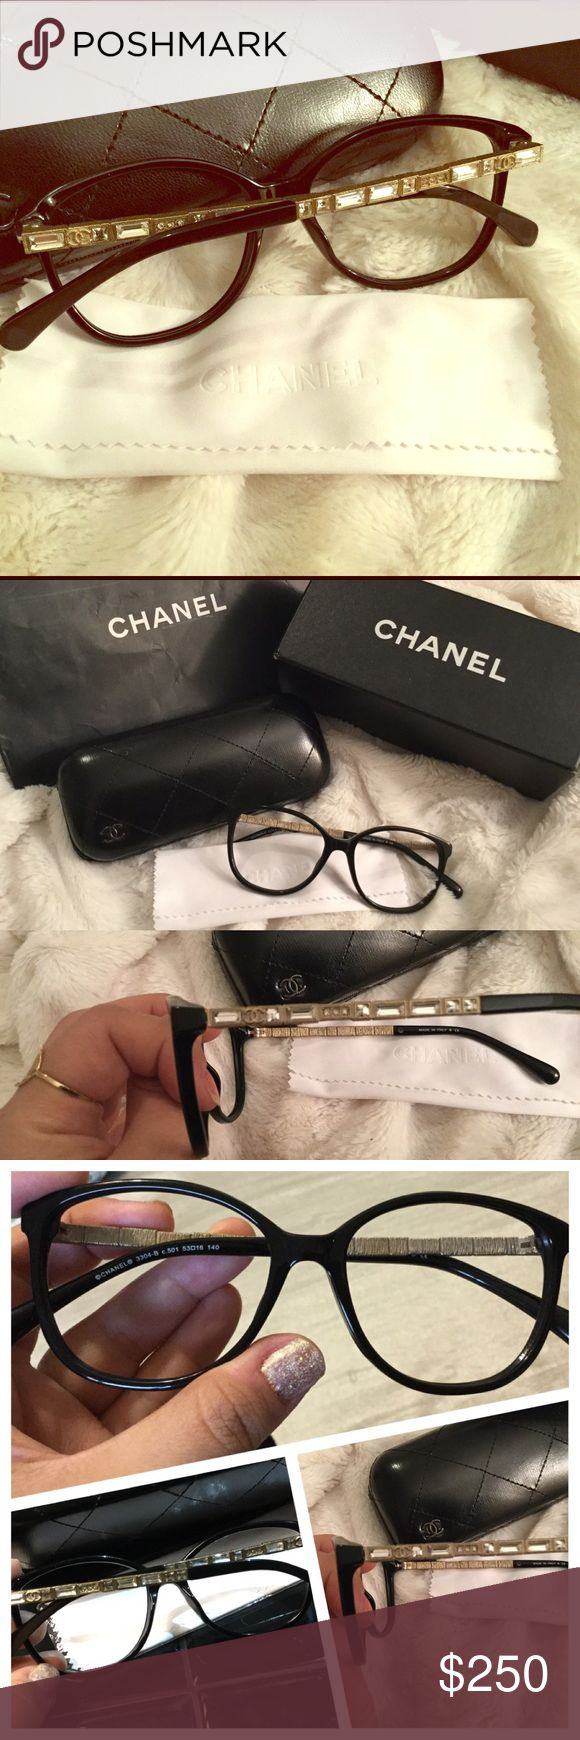 Beautiful Chanel glasses NWB NEVER WORN Chanel optical glasses. Nothing says you are classy and have style like a pair of Chanel optical sand These are gorgeous!!! I just have one too many glasses and a Chanel pair I already use every day. They have rhinestones on the legs and sparkle with the light. Truly a fabulous chic pair comes with case and dust cloth CHANEL Accessories Sunglasses